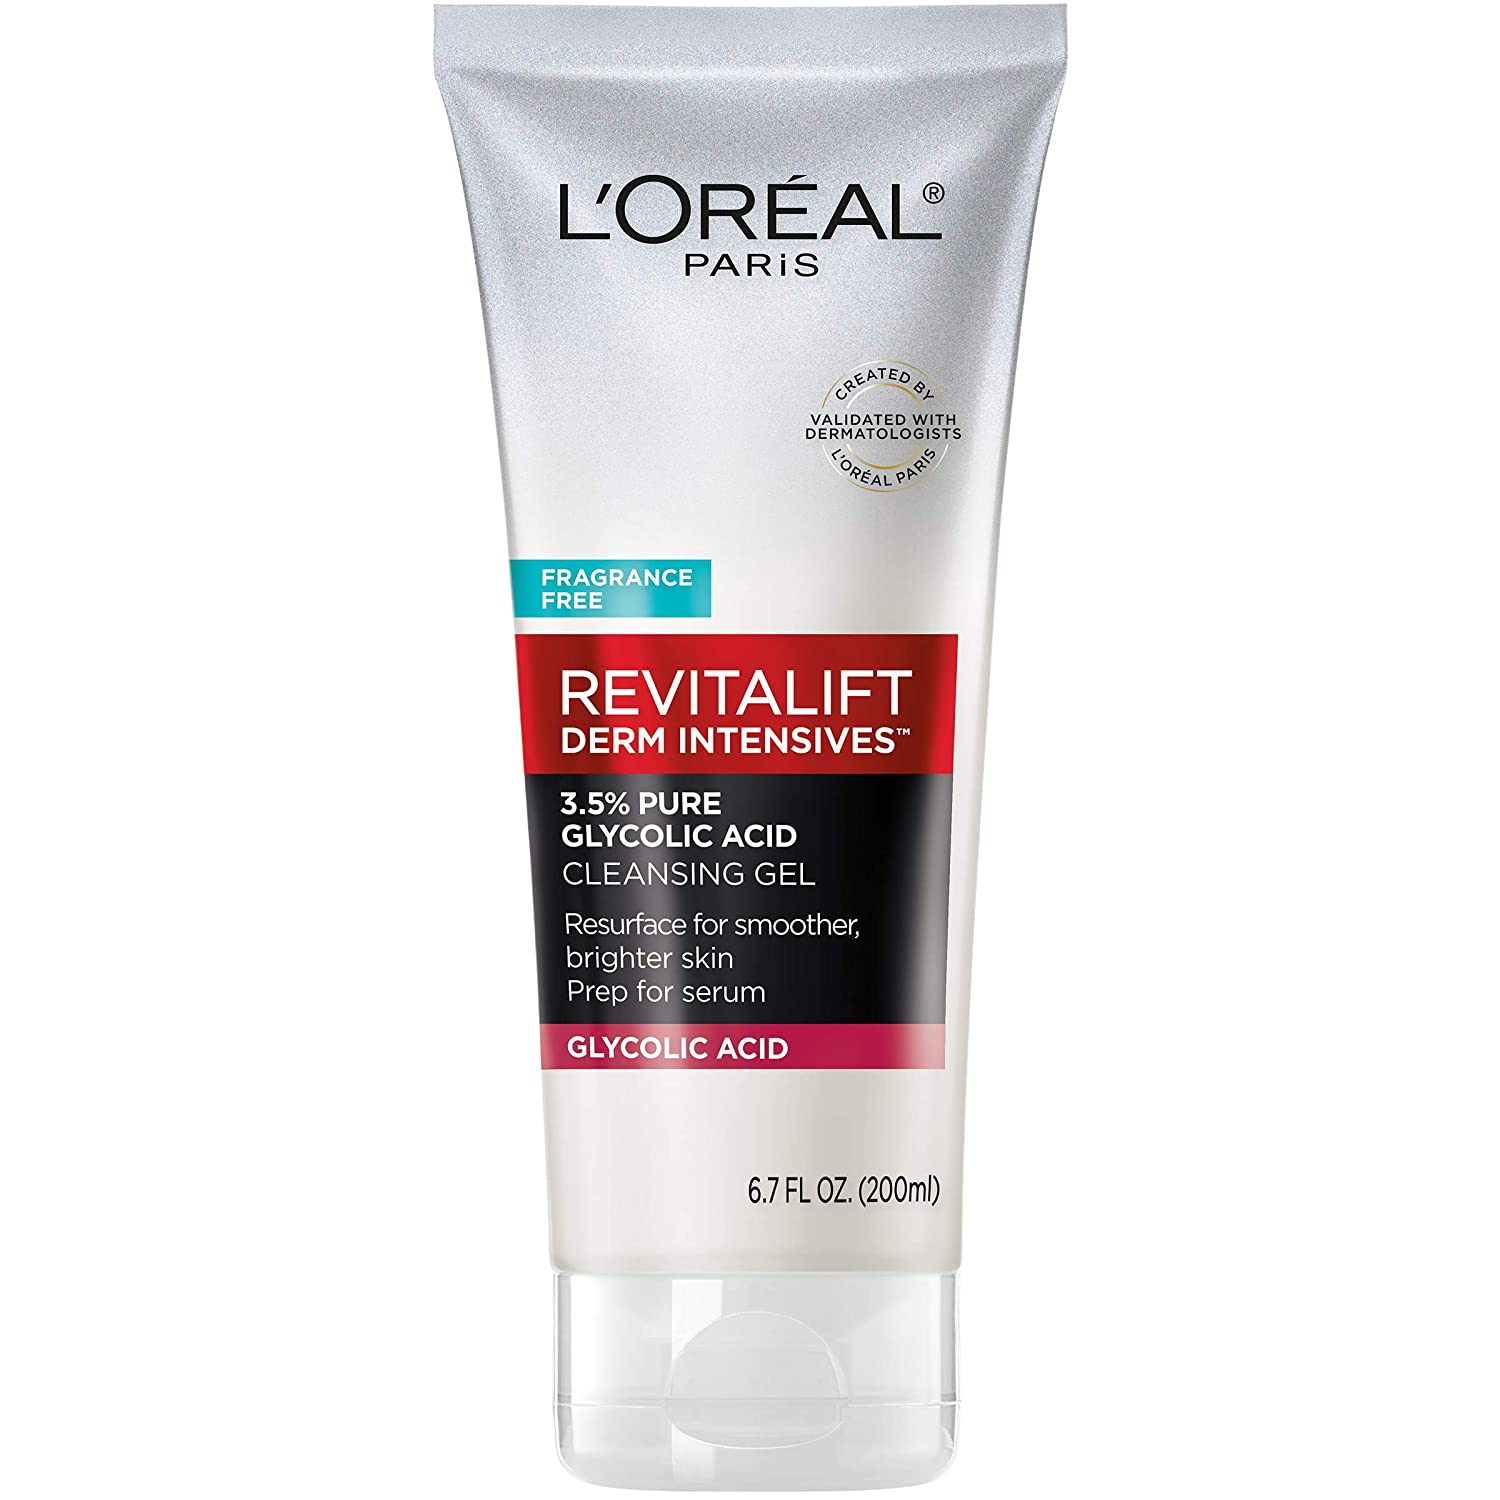 L'Oreal Paris Skincare Revitalift Derm Intensives Gel Cleanser with 3.5% Pure Glycolic Acid, Salicylic Acid to resurface and prep skin for serum, 6.7 fl oz: Beauty